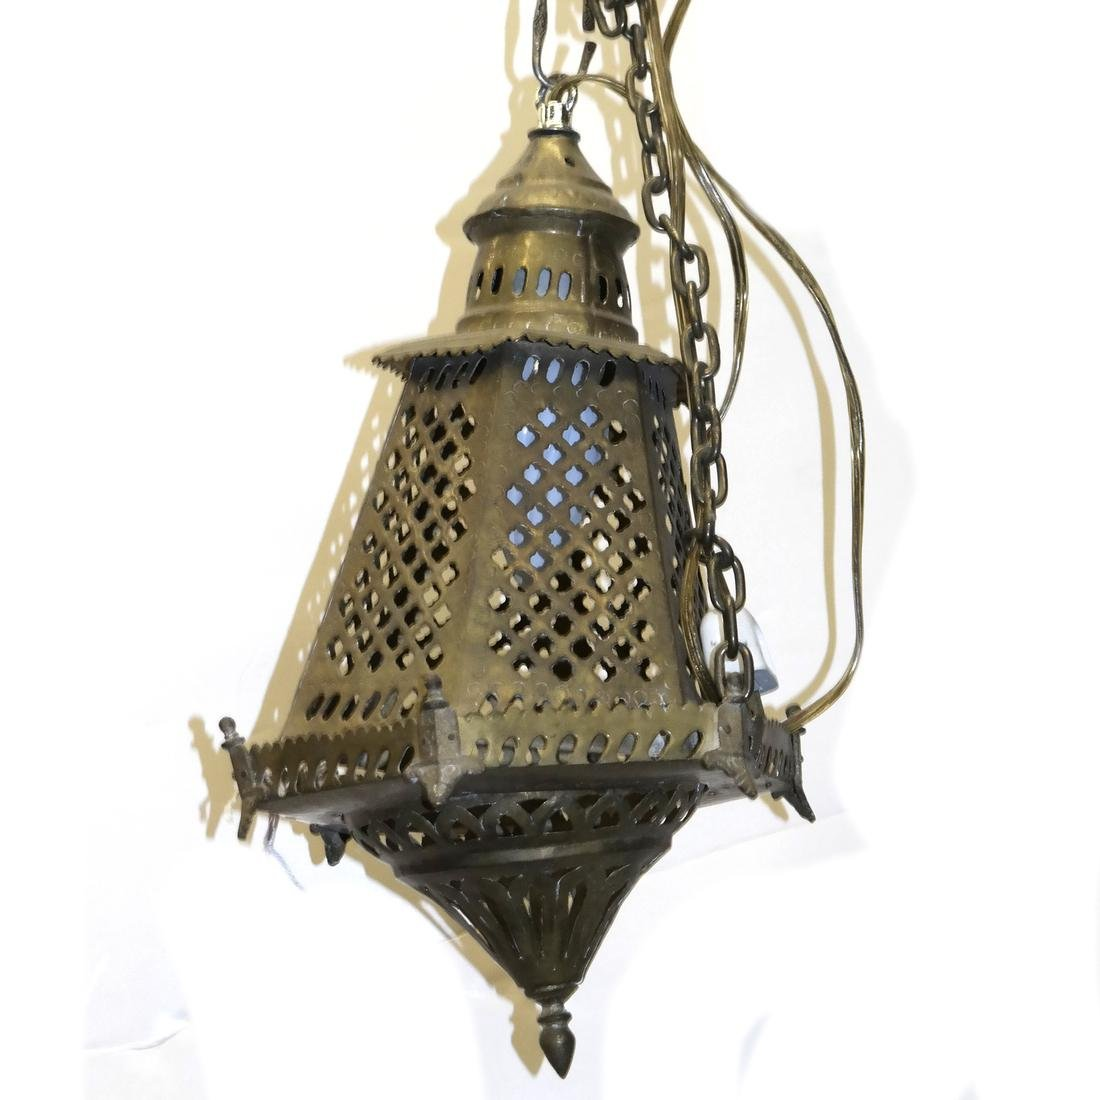 Lighthouse-Form Reticulated Lantern